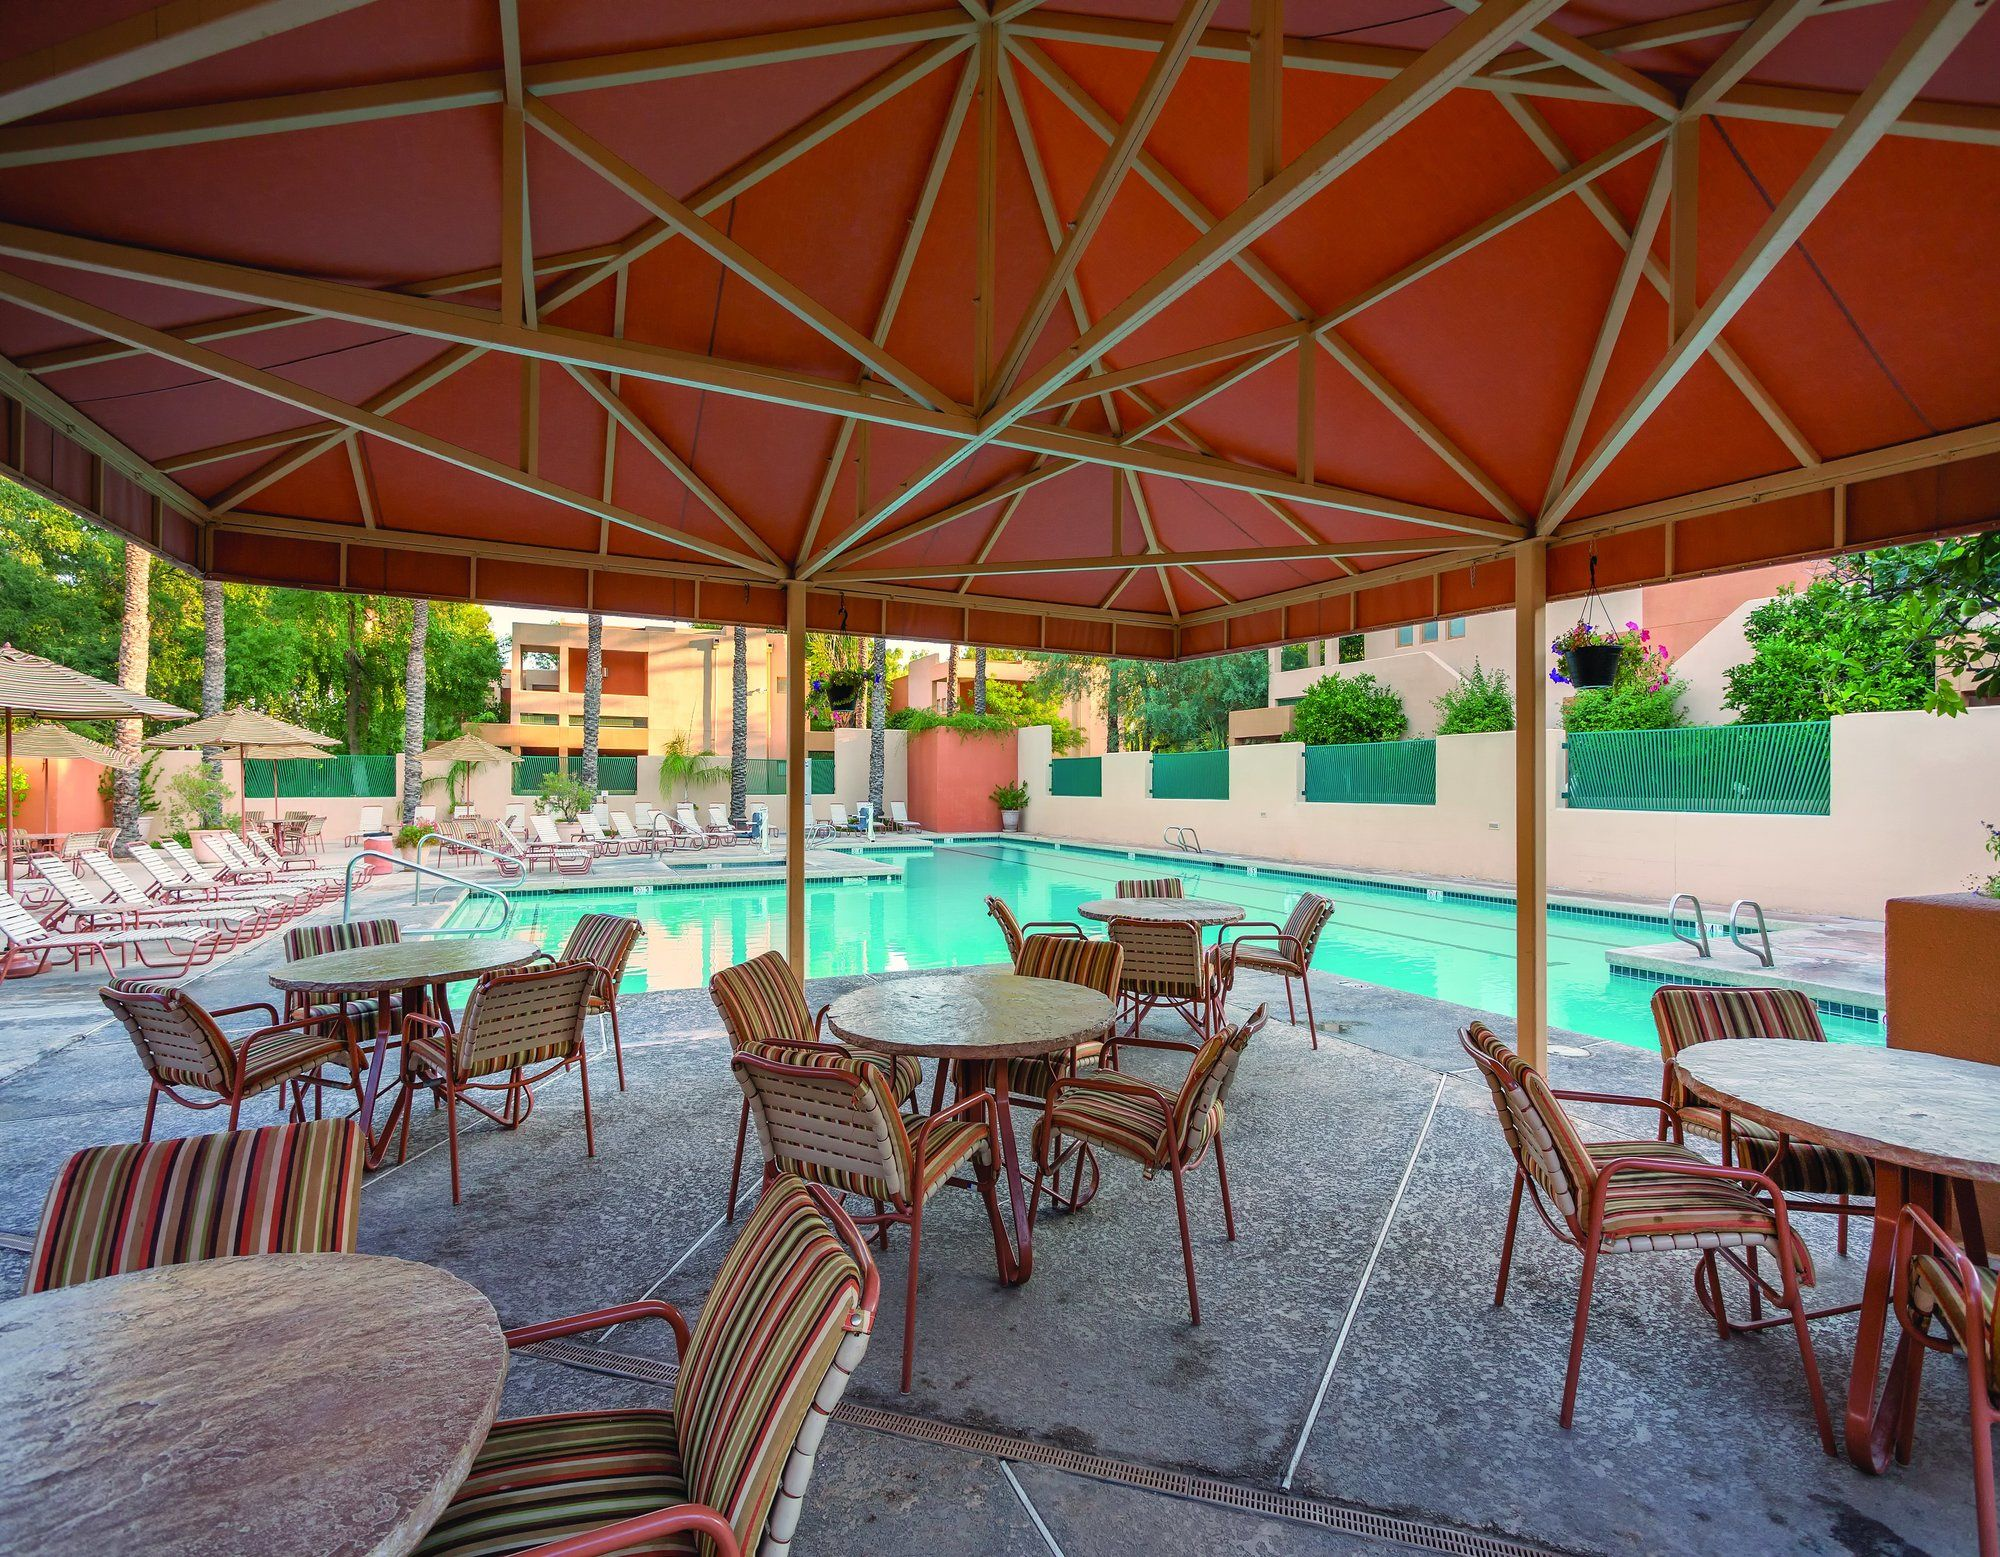 Discount Coupon For Orange Tree Golf Resort In Scottsdale